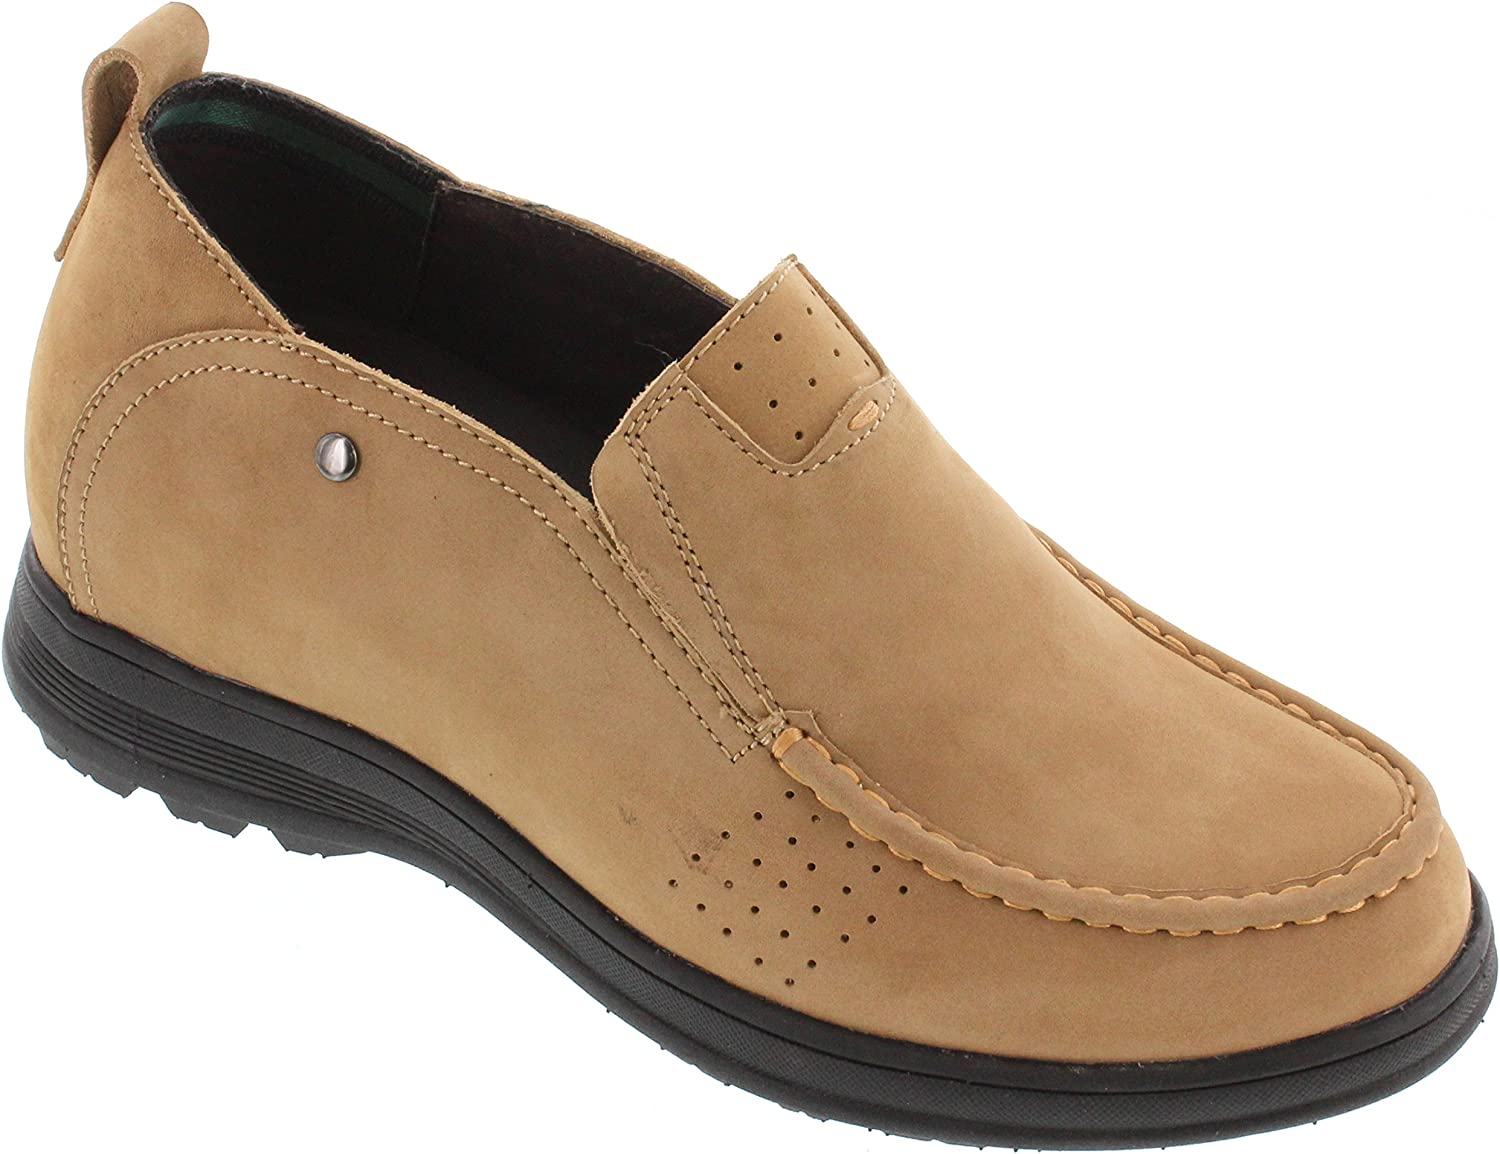 CALDEN K286021-3 Inches Taller - Height Increasing Elevator shoes (Brown Slip-on Casual shoes)